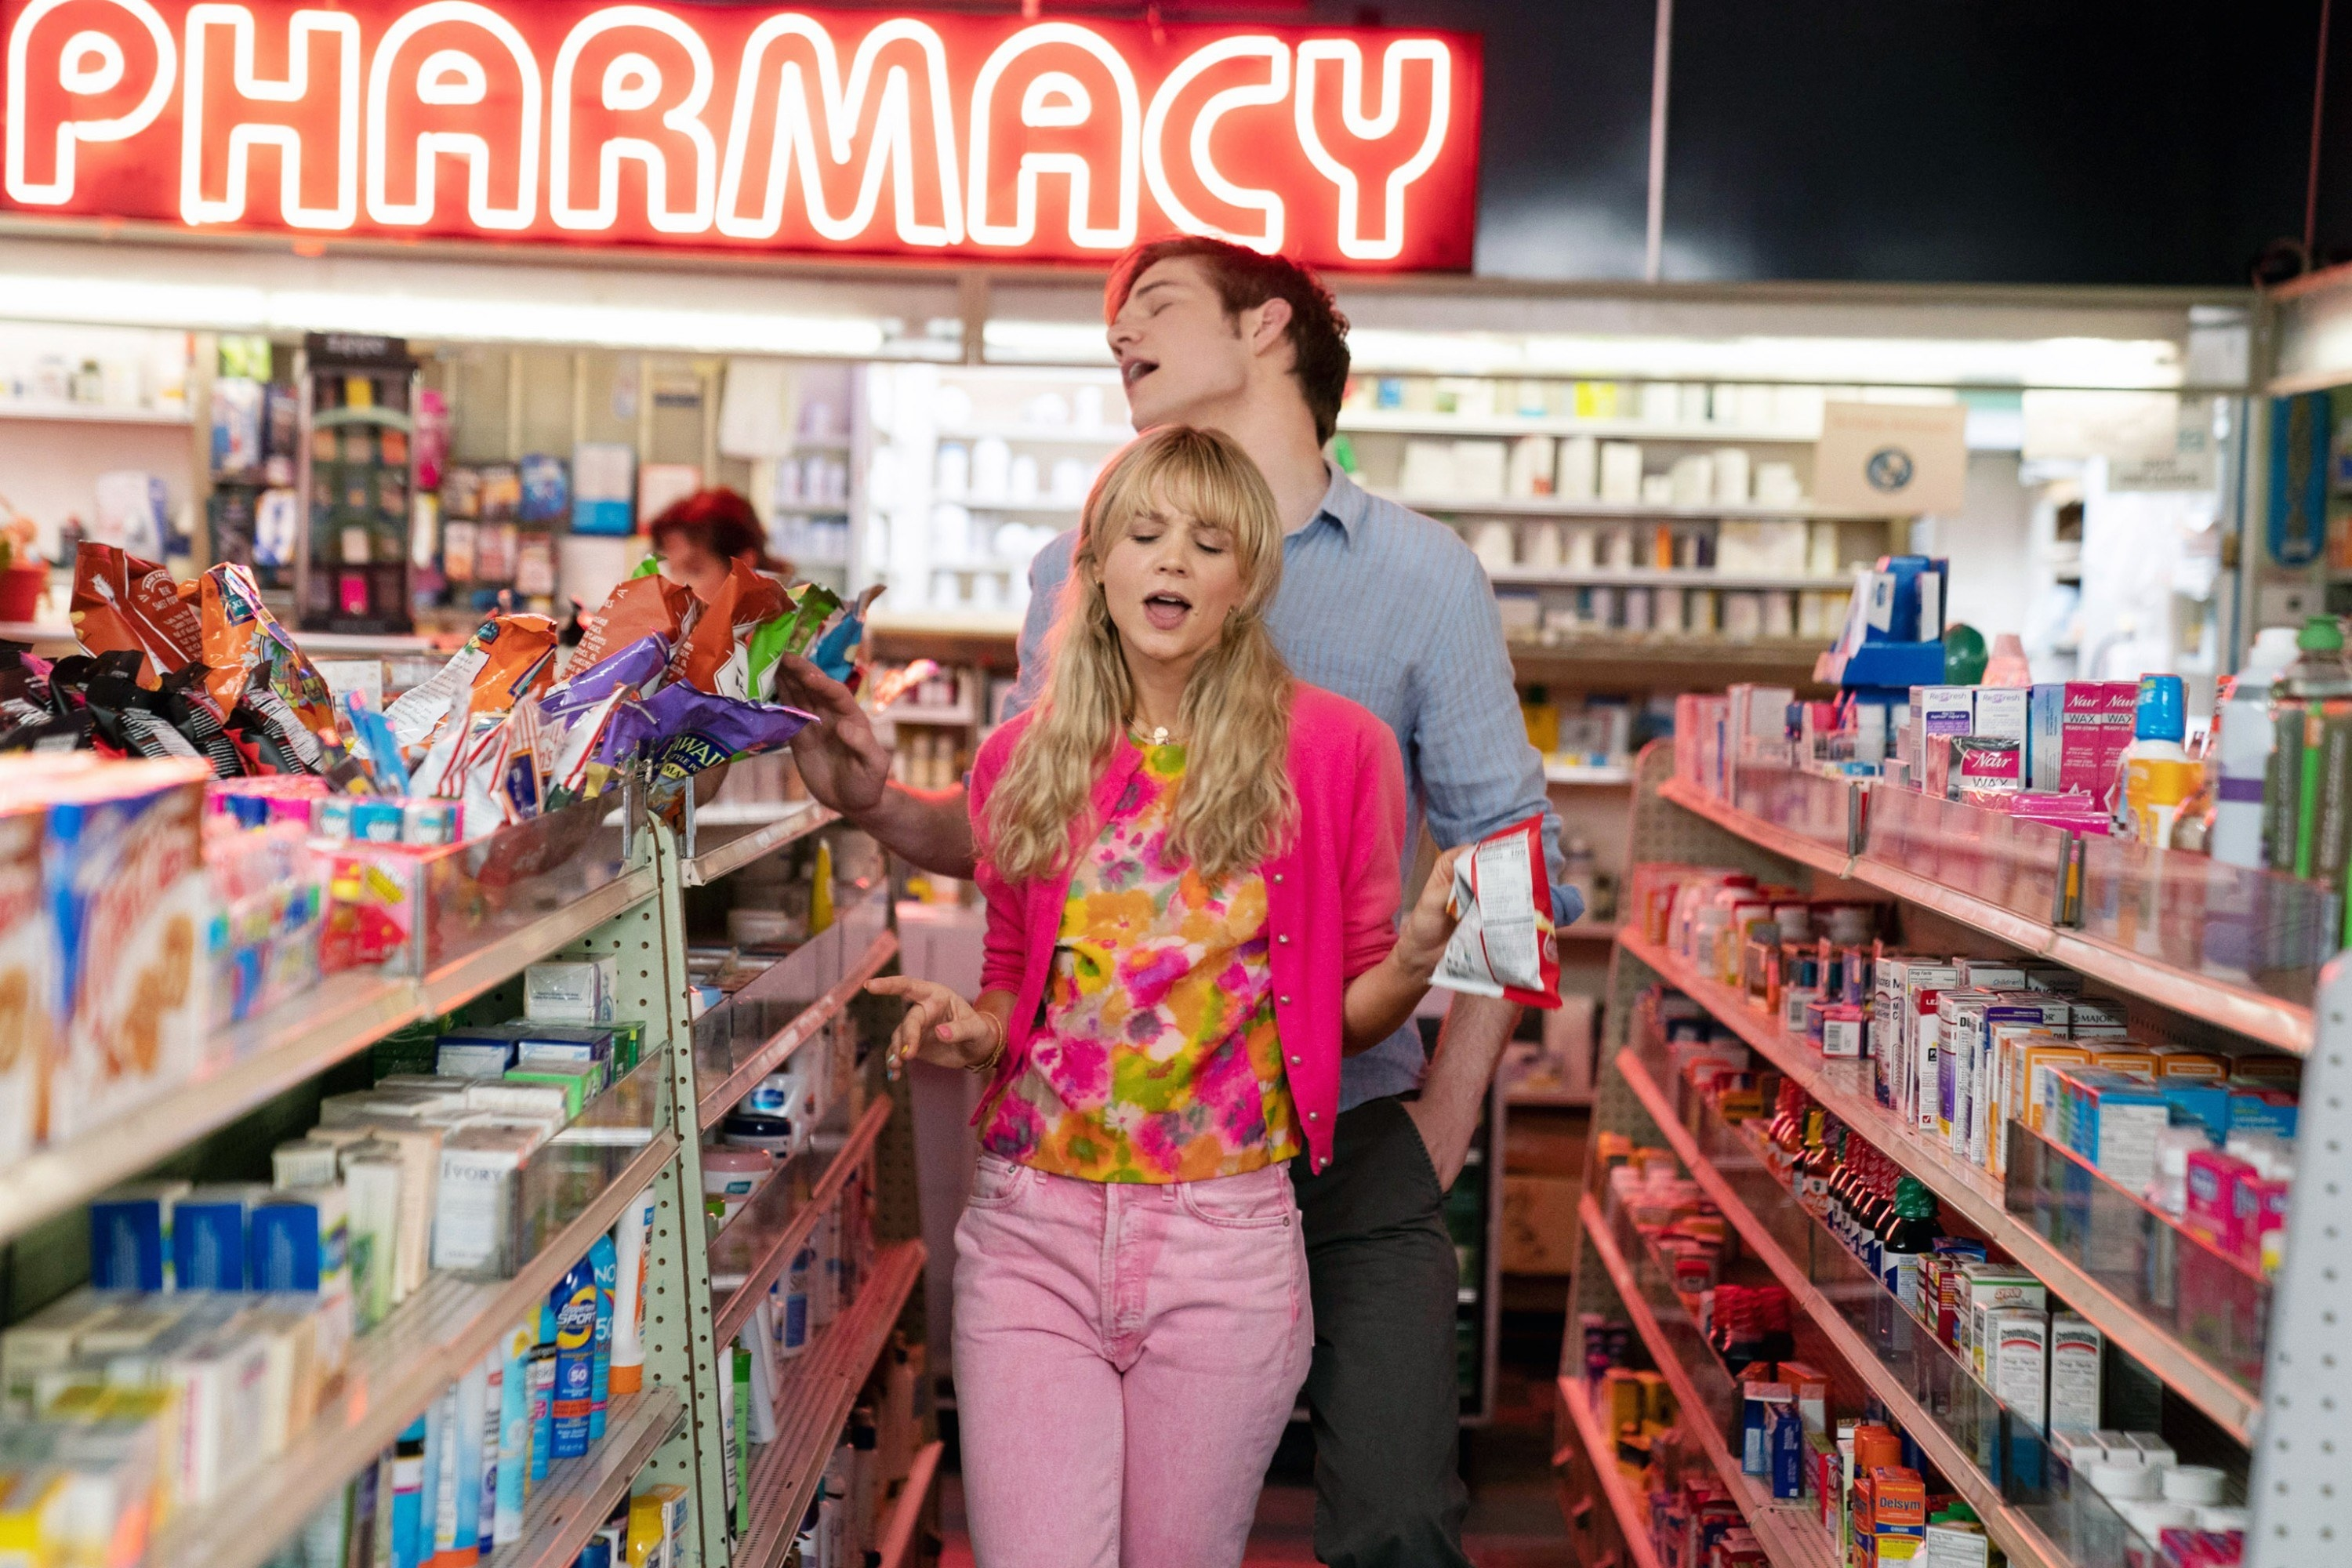 Carey and Bo singing in Promising Young Woman as they walk down a store aisle